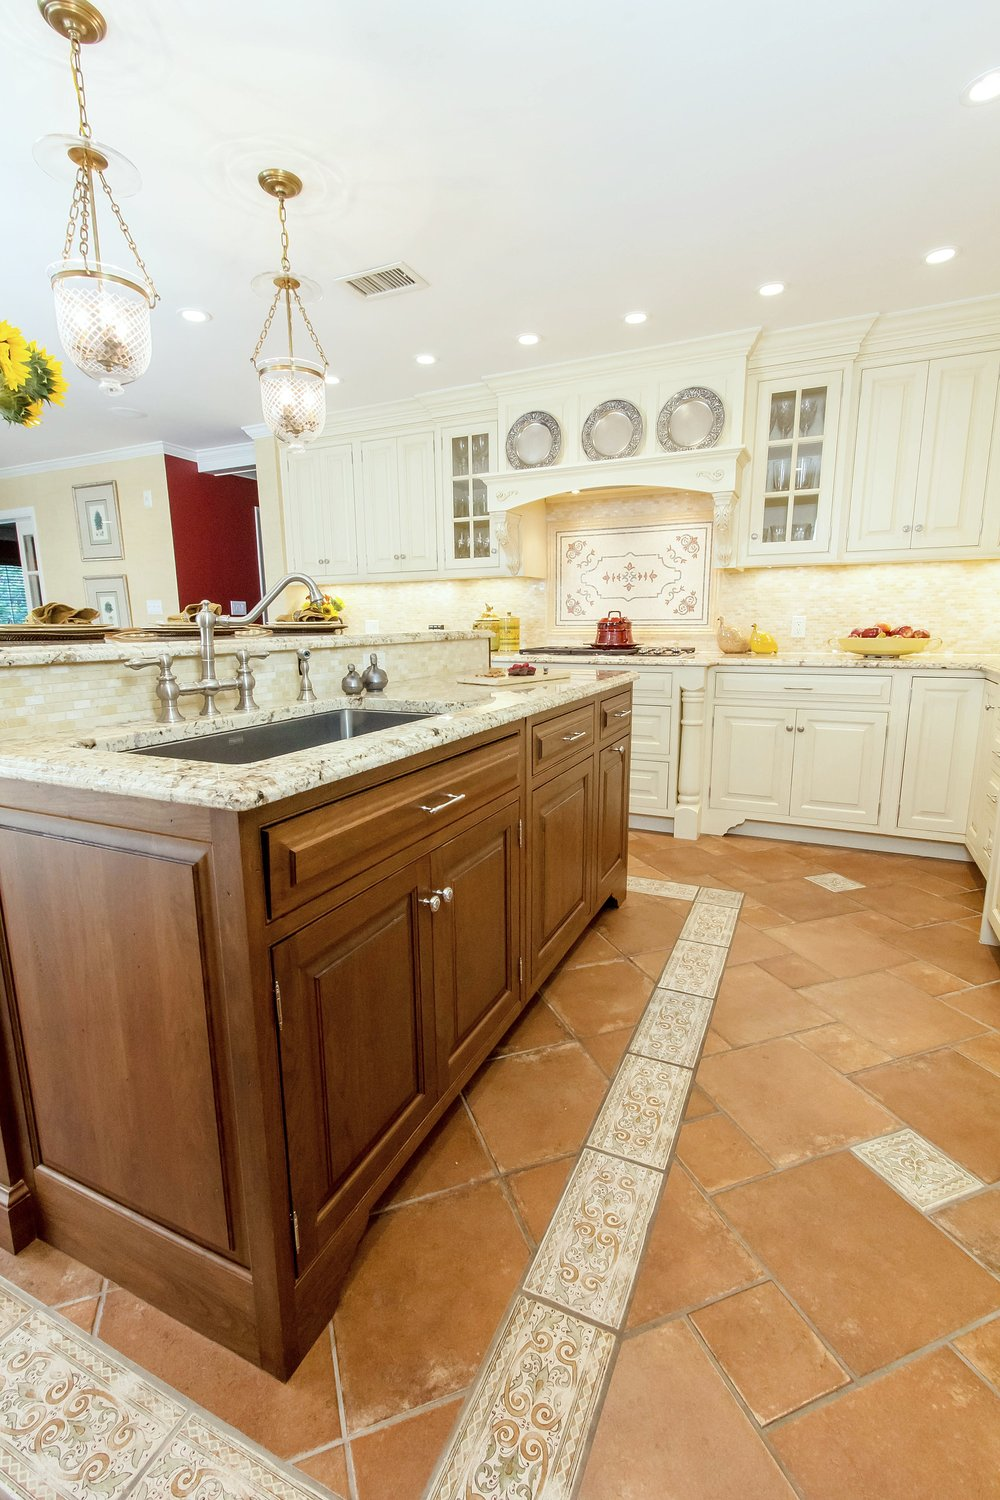 Traditional stye kitchen island with brown wood cabinets